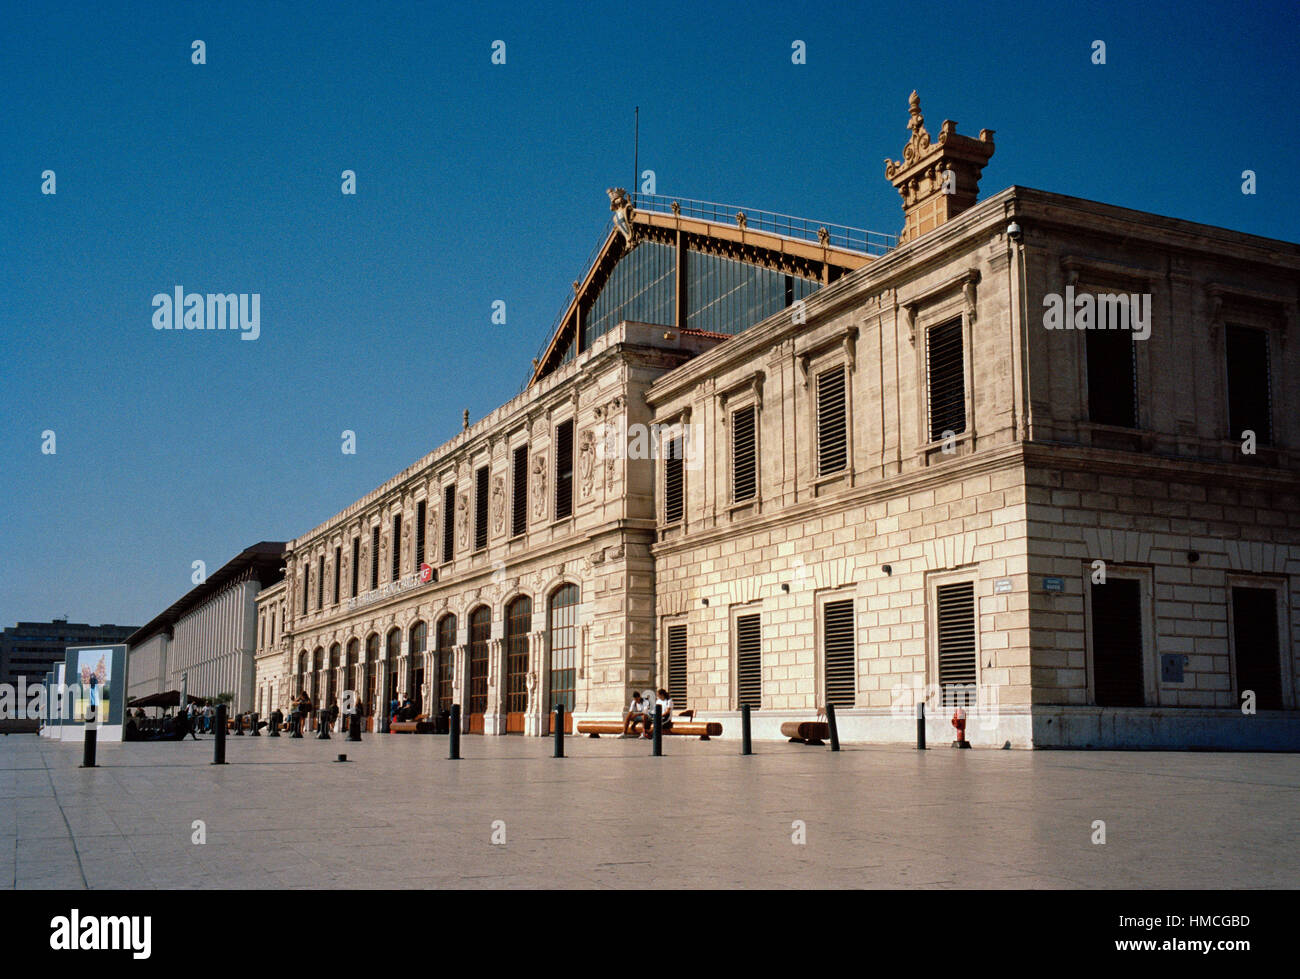 Gare de marseille stock photos gare de marseille stock images alamy - Distance gare saint charles port marseille ...